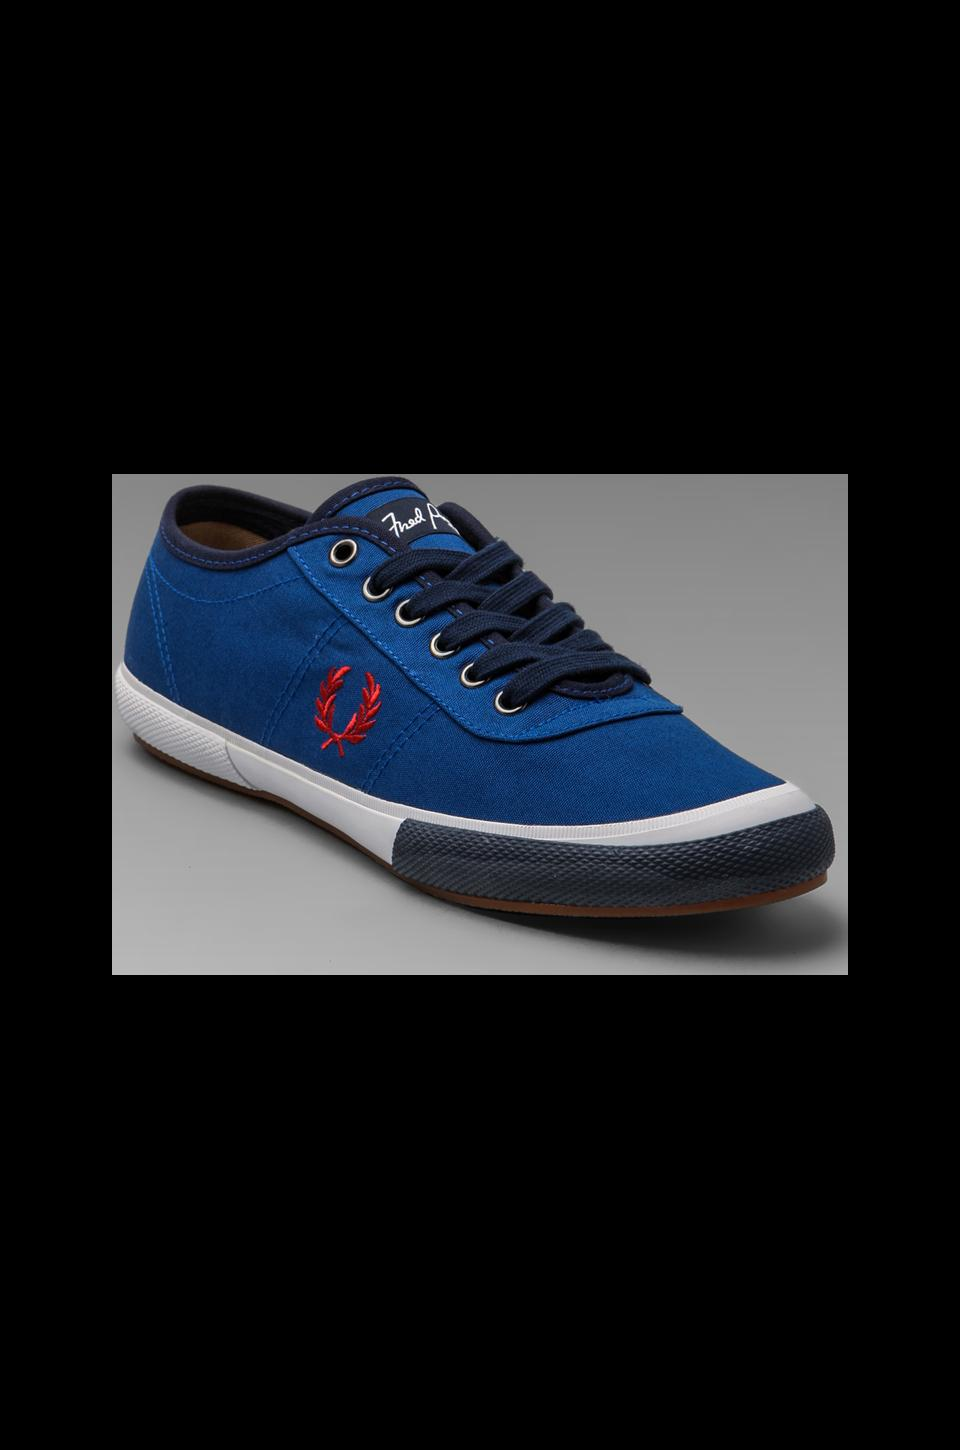 Fred Perry Woodford Canvas in Royal/Blood/Carbon Blue